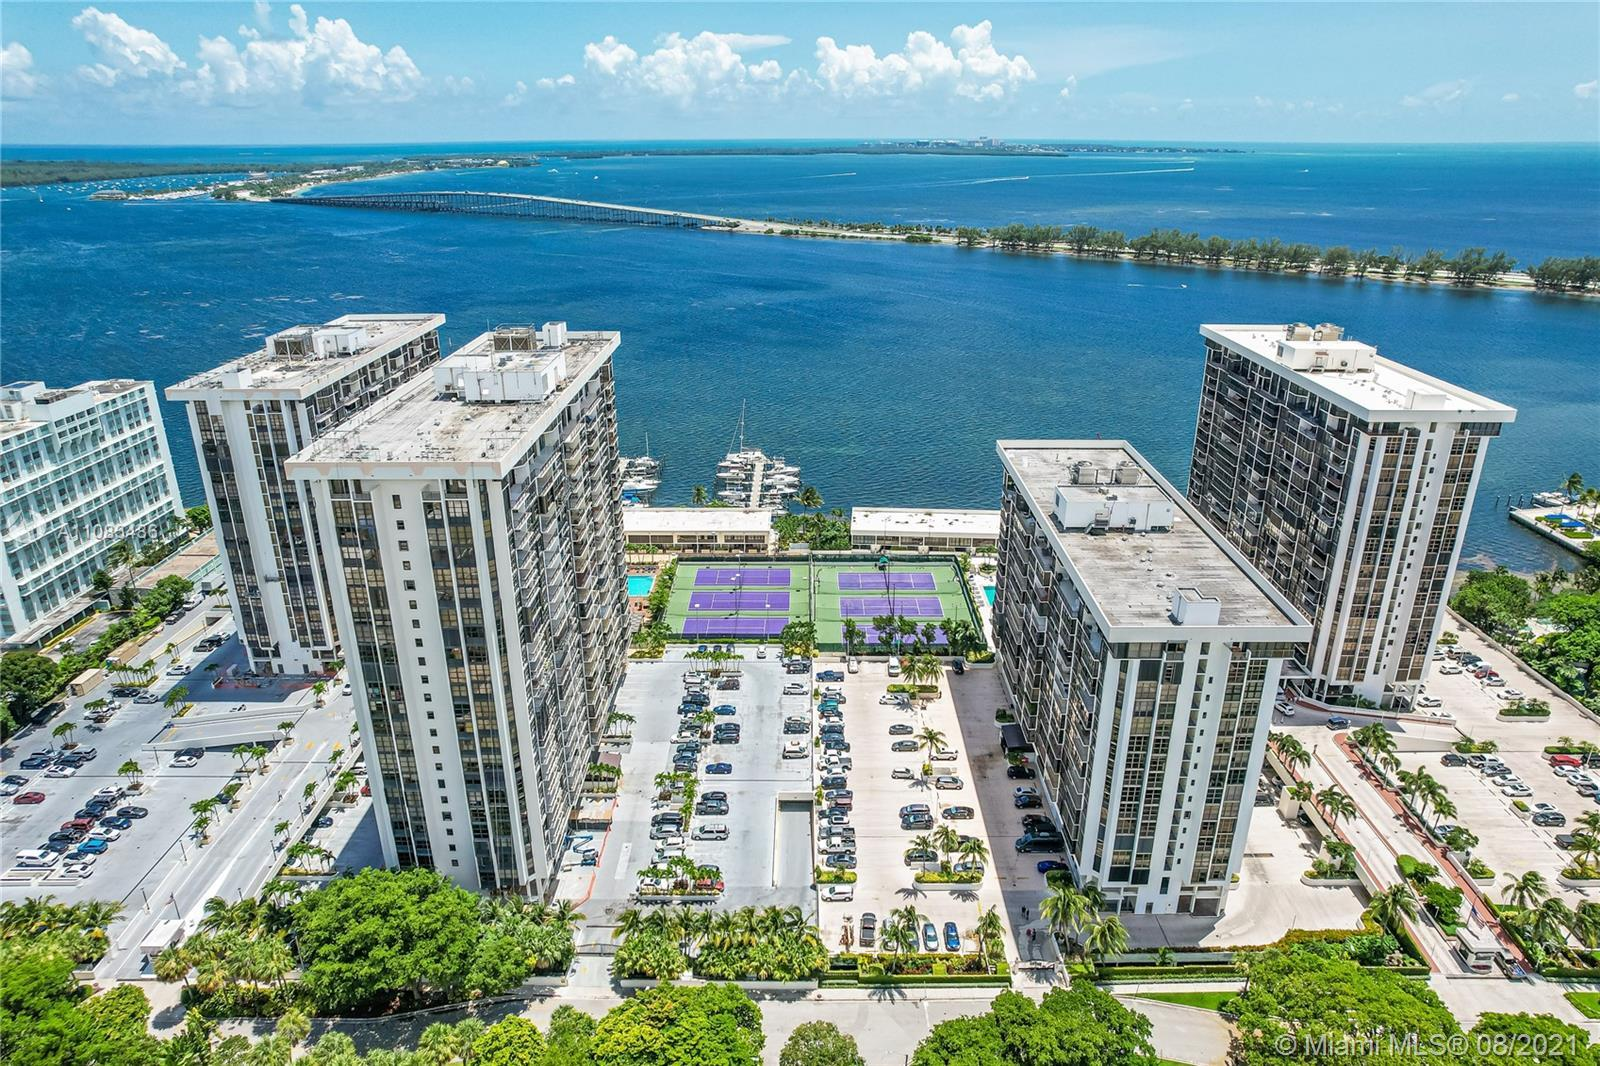 THIS SPECTACULAR PENTHOUSE, IN THE HEART OF MIAMI'S BRICKELL AVENUE, IS FOR SALE TOGETHER WITH 2 SID